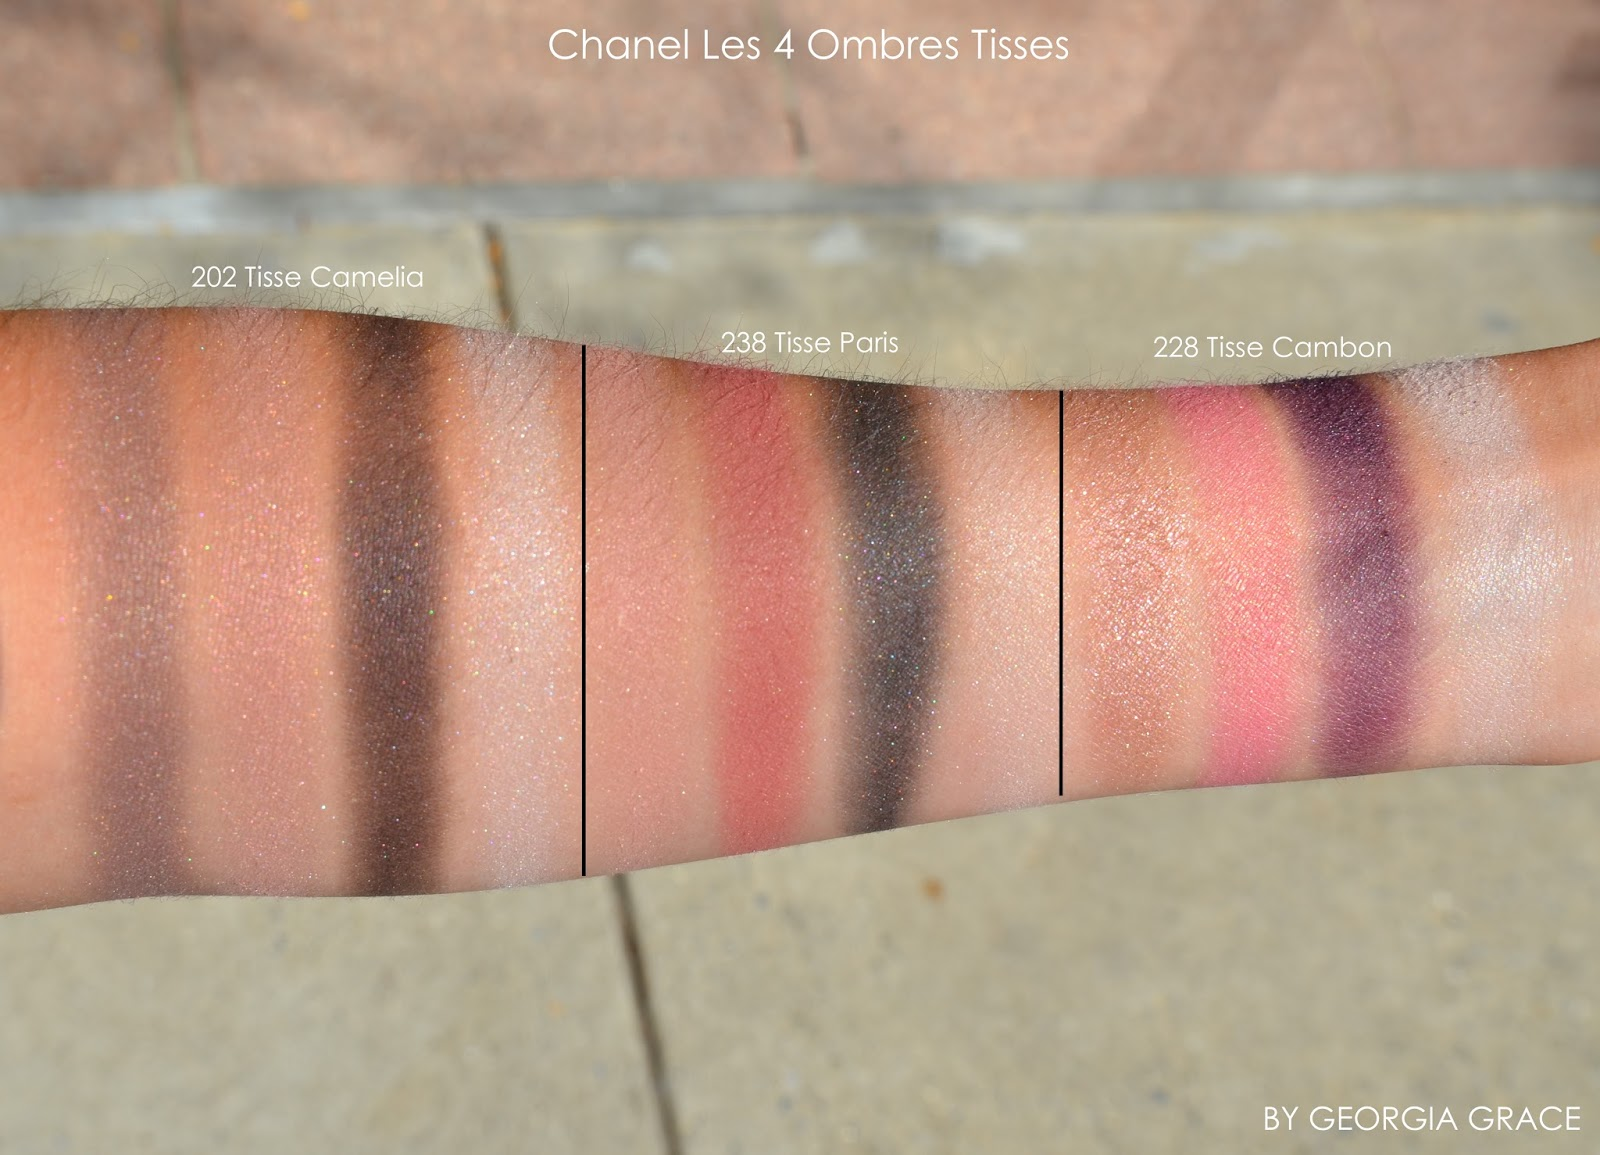 Chanel Les 4 Ombres Eyeshadow Quads Swatches of All Shades ...